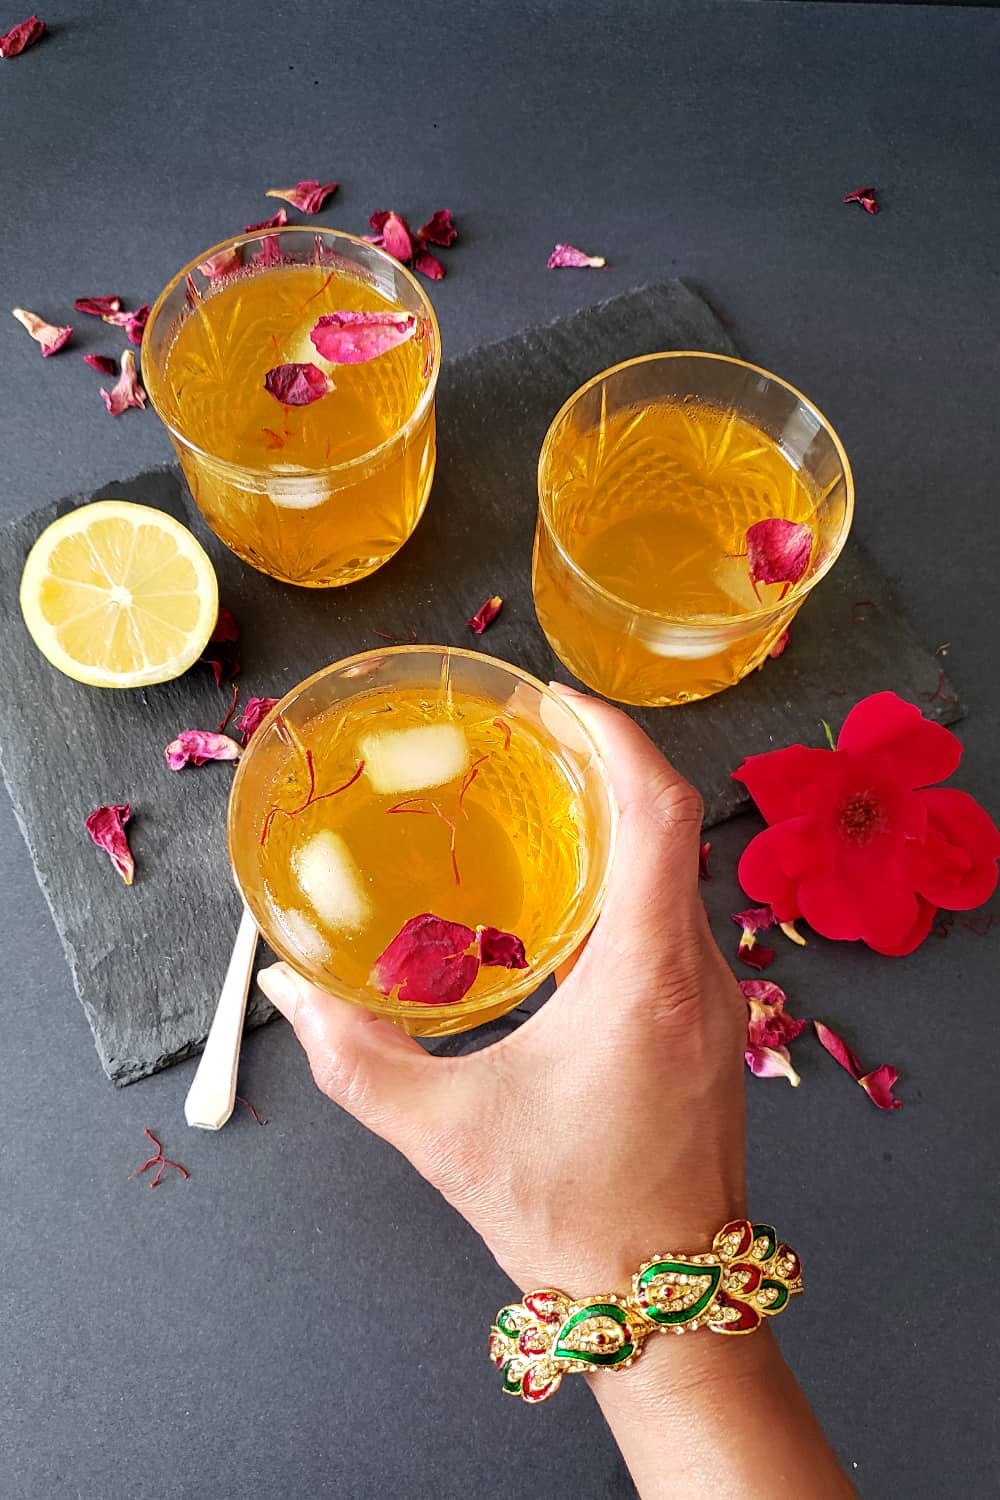 A hand holding glass of chilled saffron rose lemonade